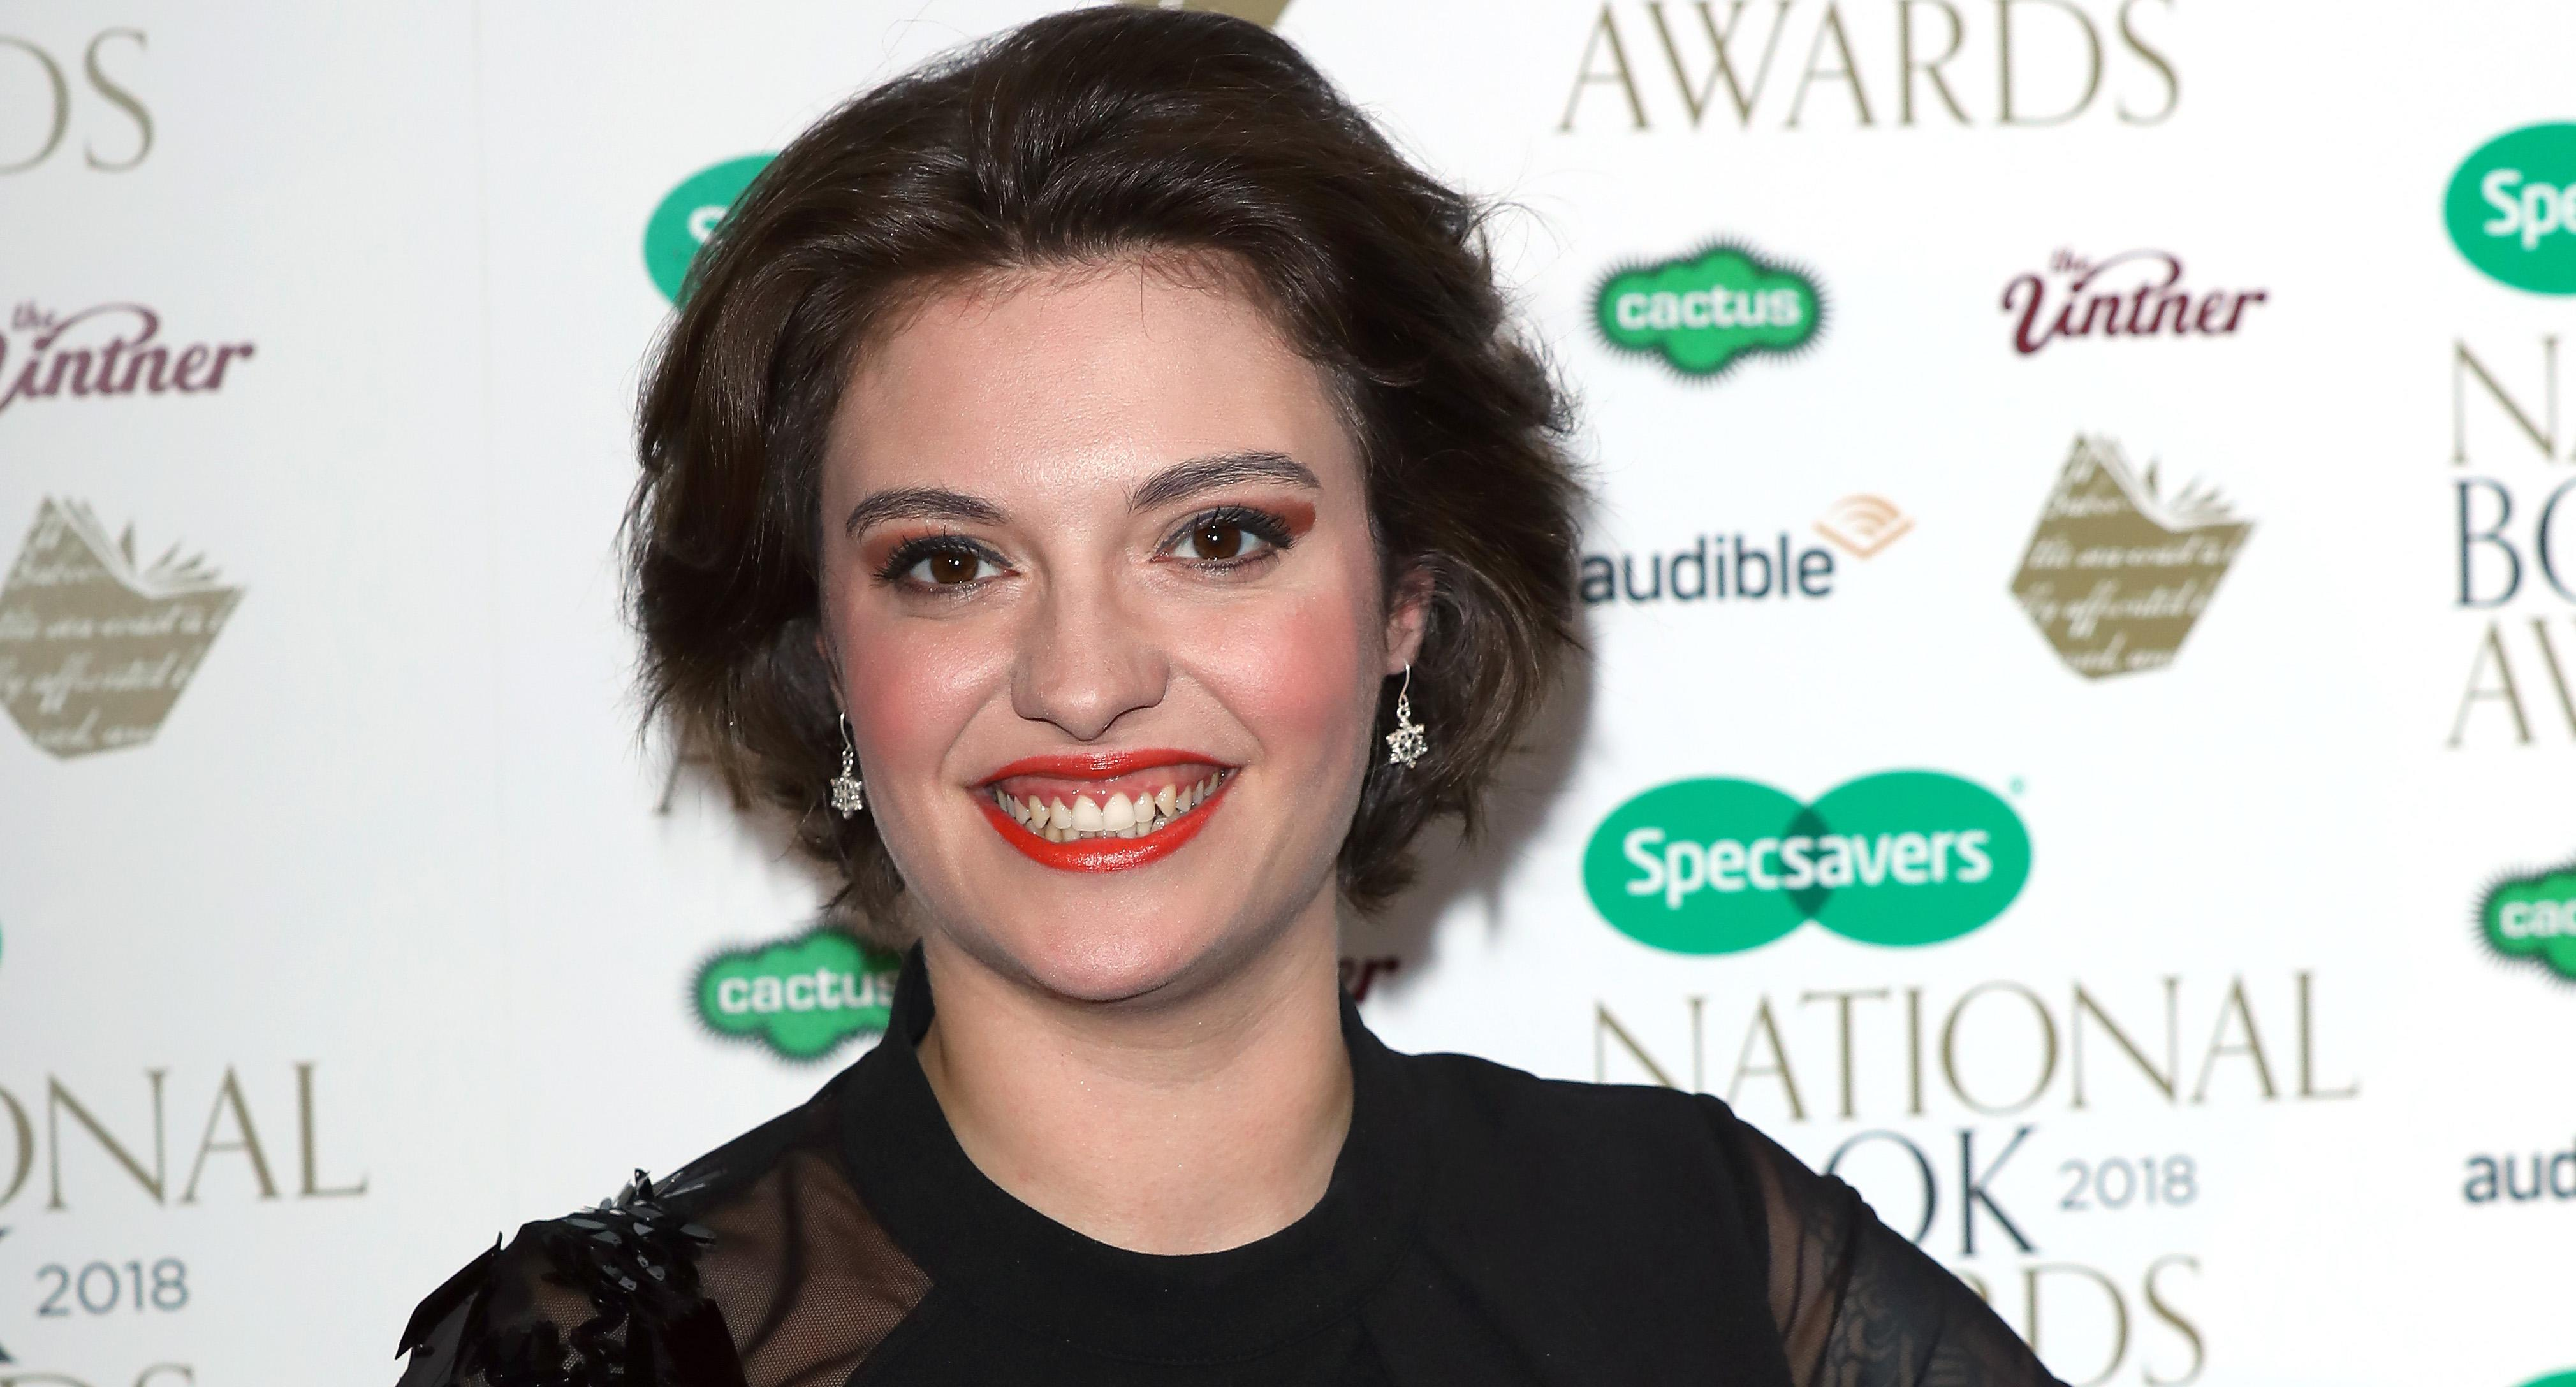 Jack Monroe lands BBC cooking show after Jamie Oliver backlash